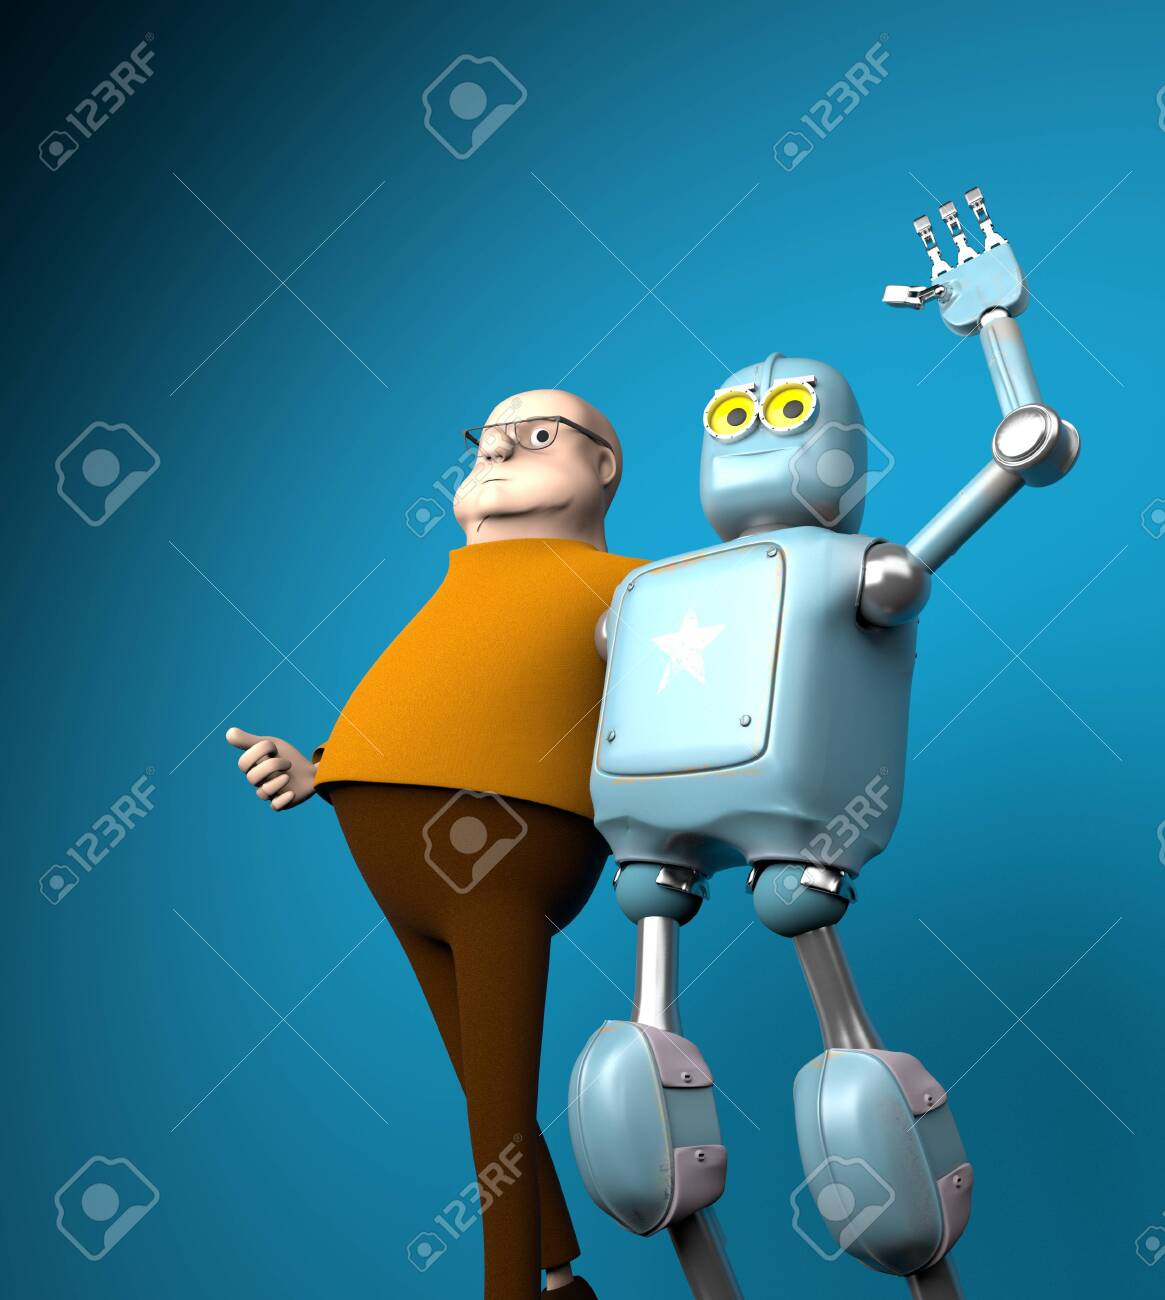 The robot and man friend, artificial intelligence training - 150140839